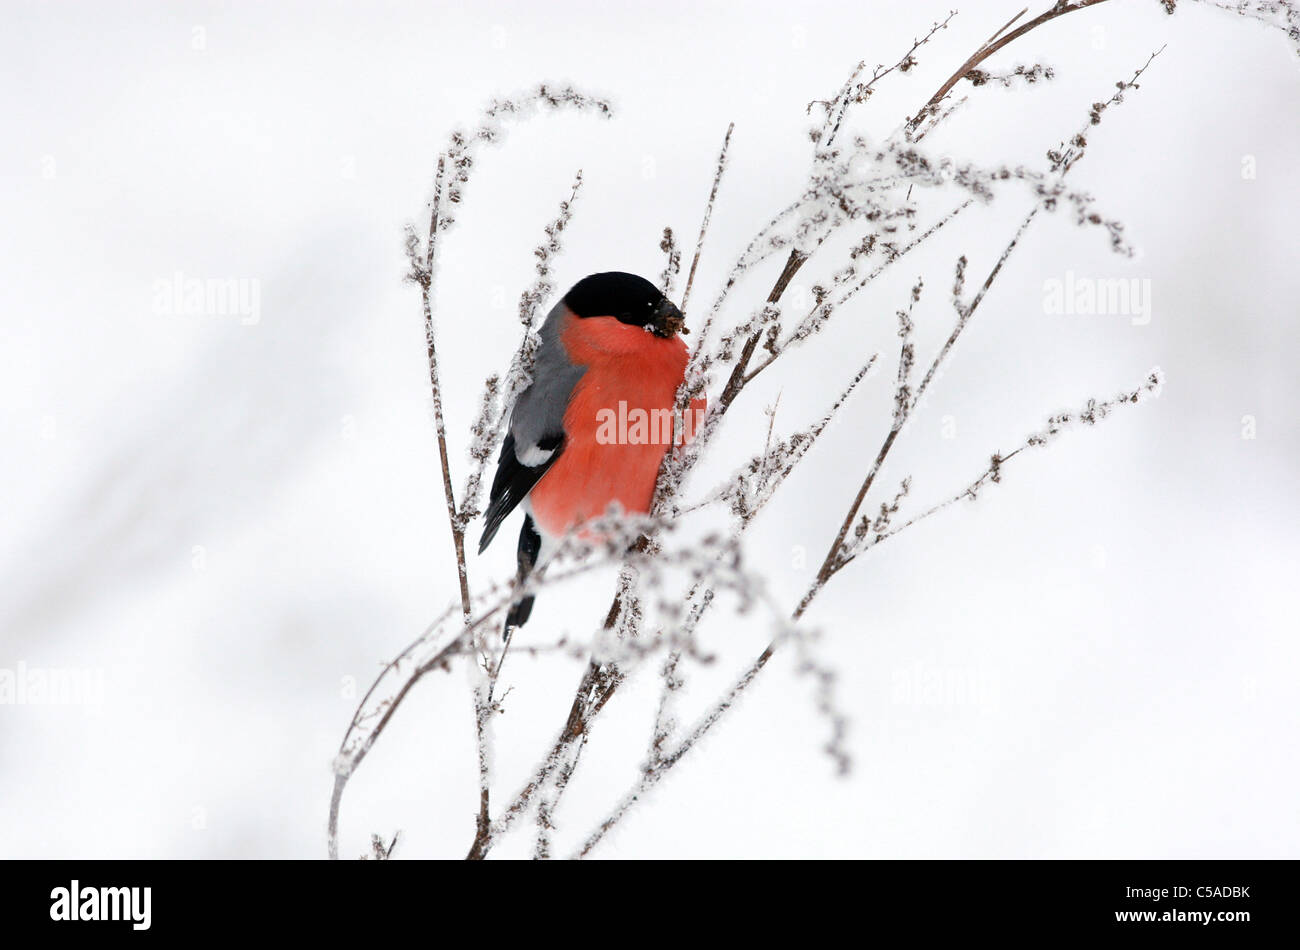 A bullfinch sitting on a snow-covered twig - Stock Image